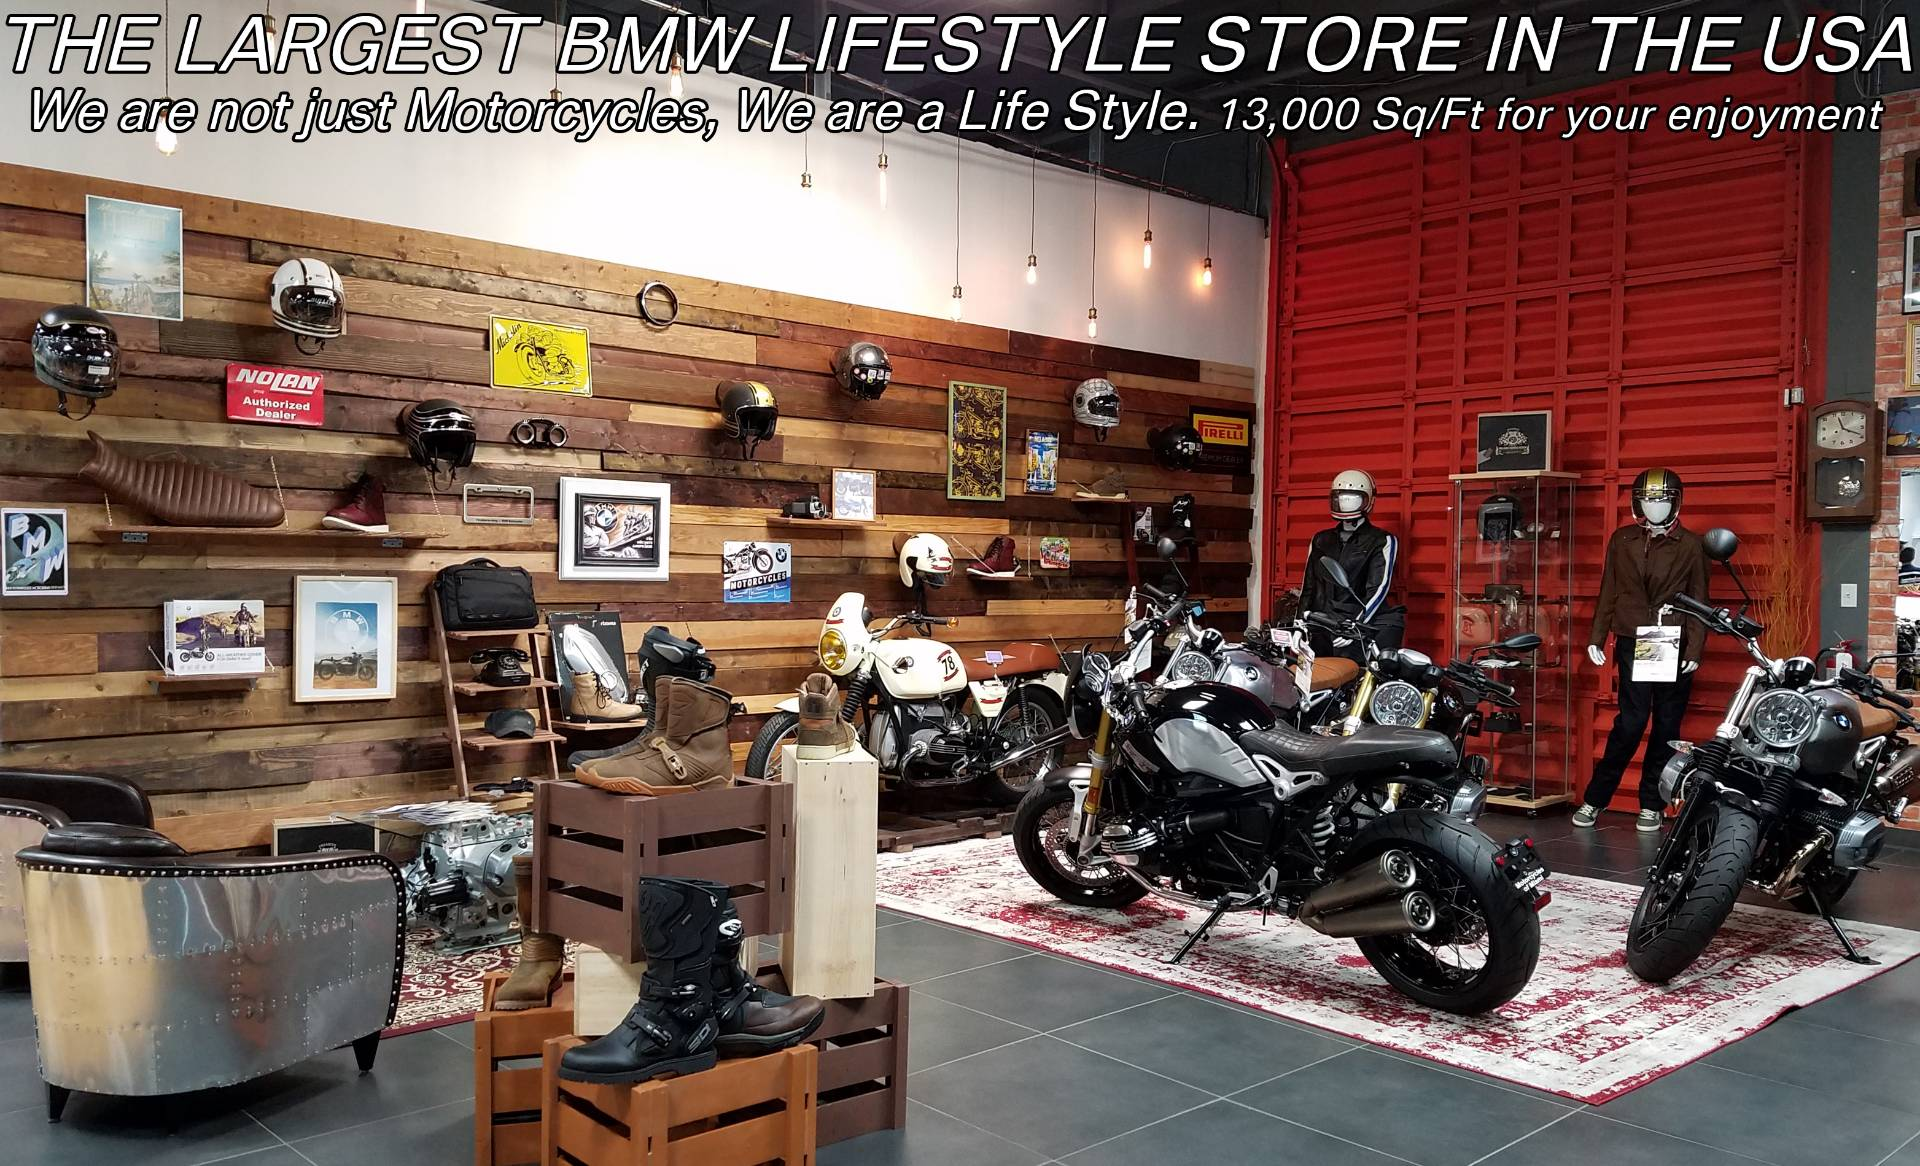 New 2020 2019 BMW R NineT for sale, BMW for sale, BMW Motorcycle Café Racer, new BMW Caffe, Cafe Racer, BMW. BMW Motorcycles of Miami, Motorcycles of Miami, Motorcycles Miami, New Motorcycles, Used Motorcycles, pre-owned. #BMWMotorcyclesOfMiami #MotorcyclesOfMiami. - Photo 55